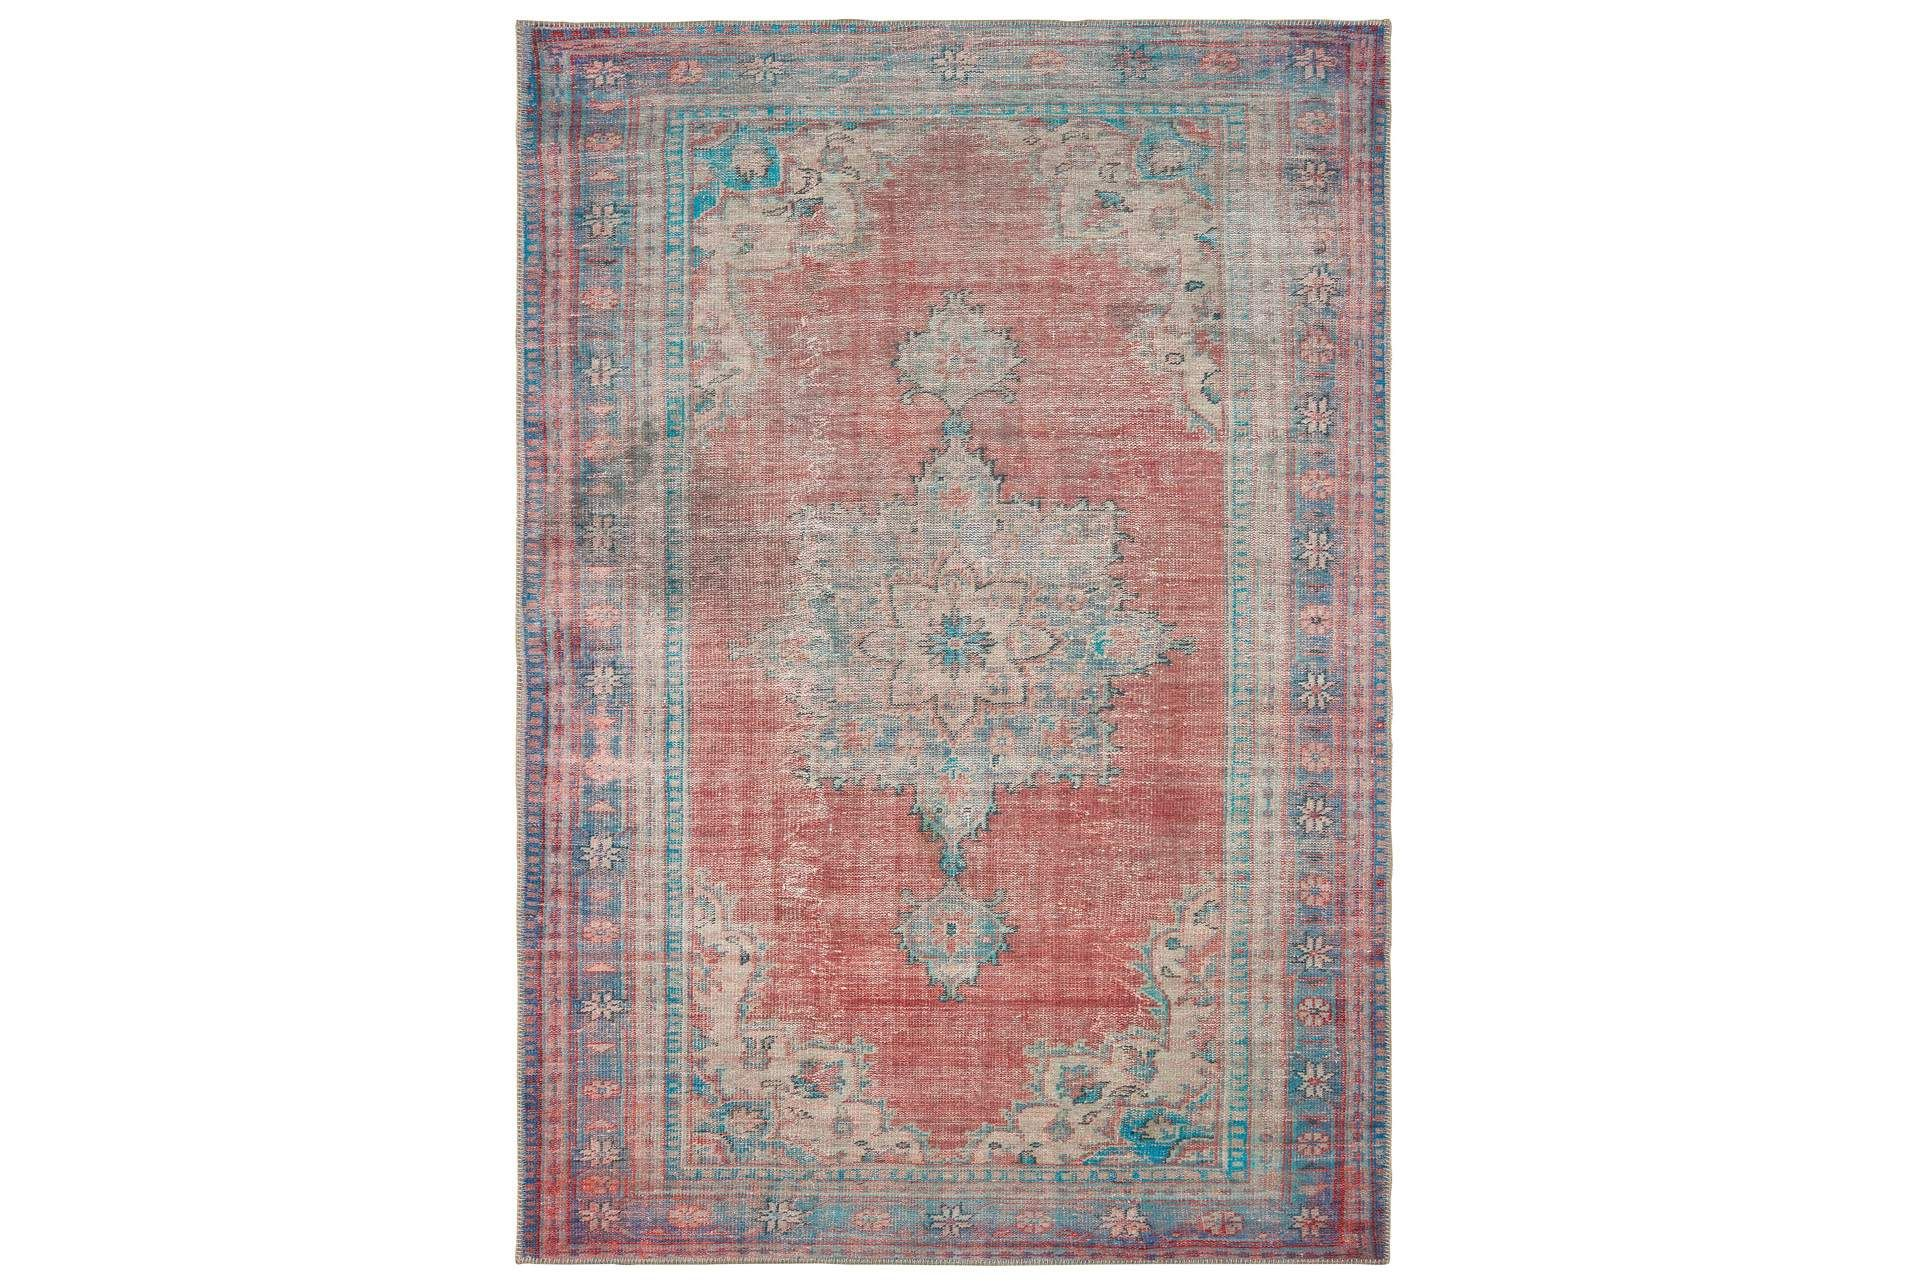 Rug Archer Distressed Red Blue Abstract 295 Rugs Red Blue Large Rugs